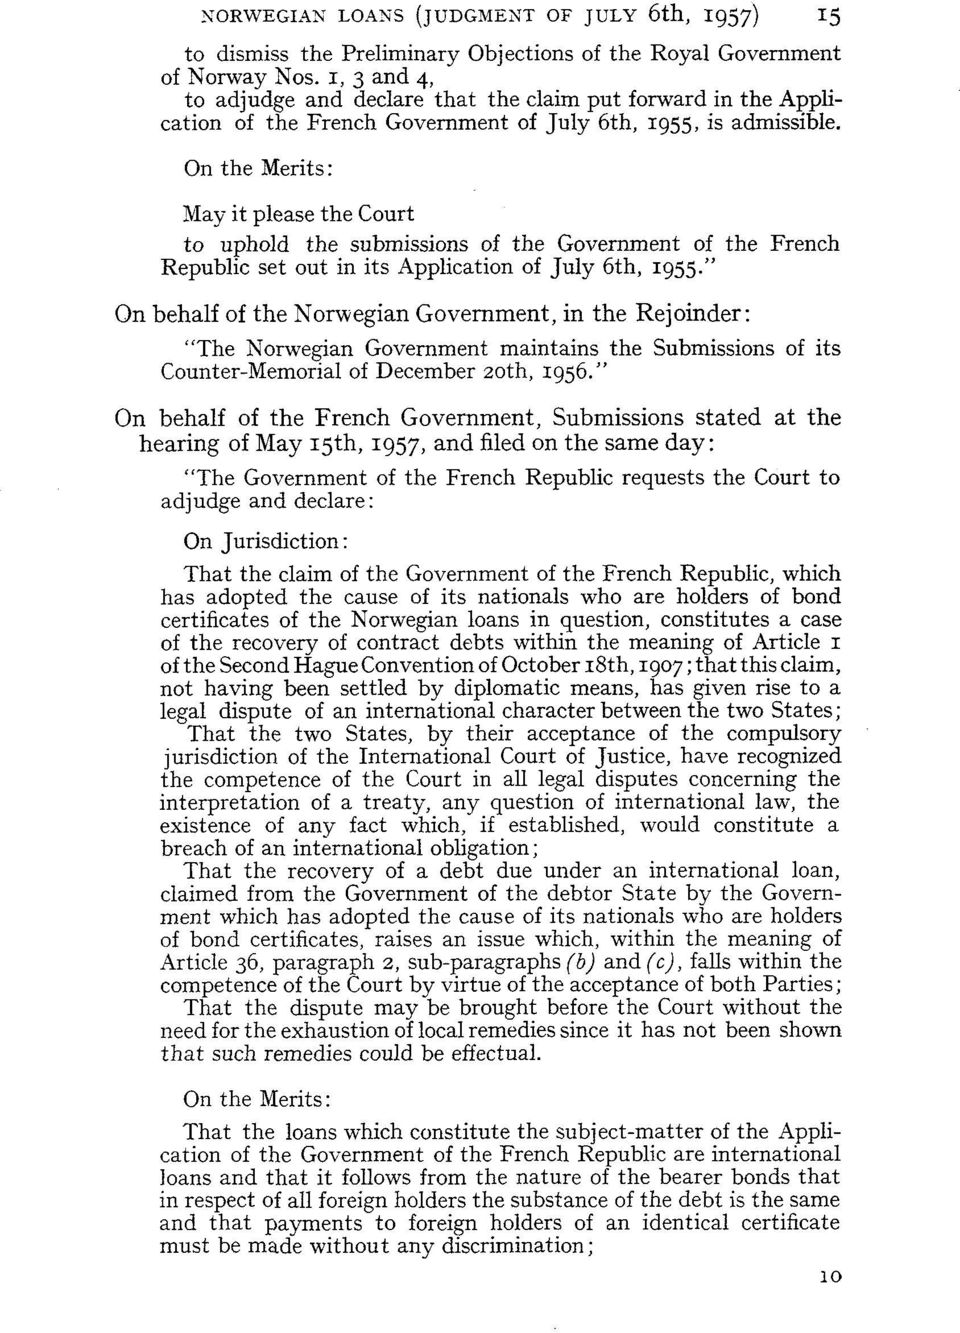 On the Merits: May it please the Court to uphold the submissions of the Government of the French Republic set out in its Application of July 6th, 1955.